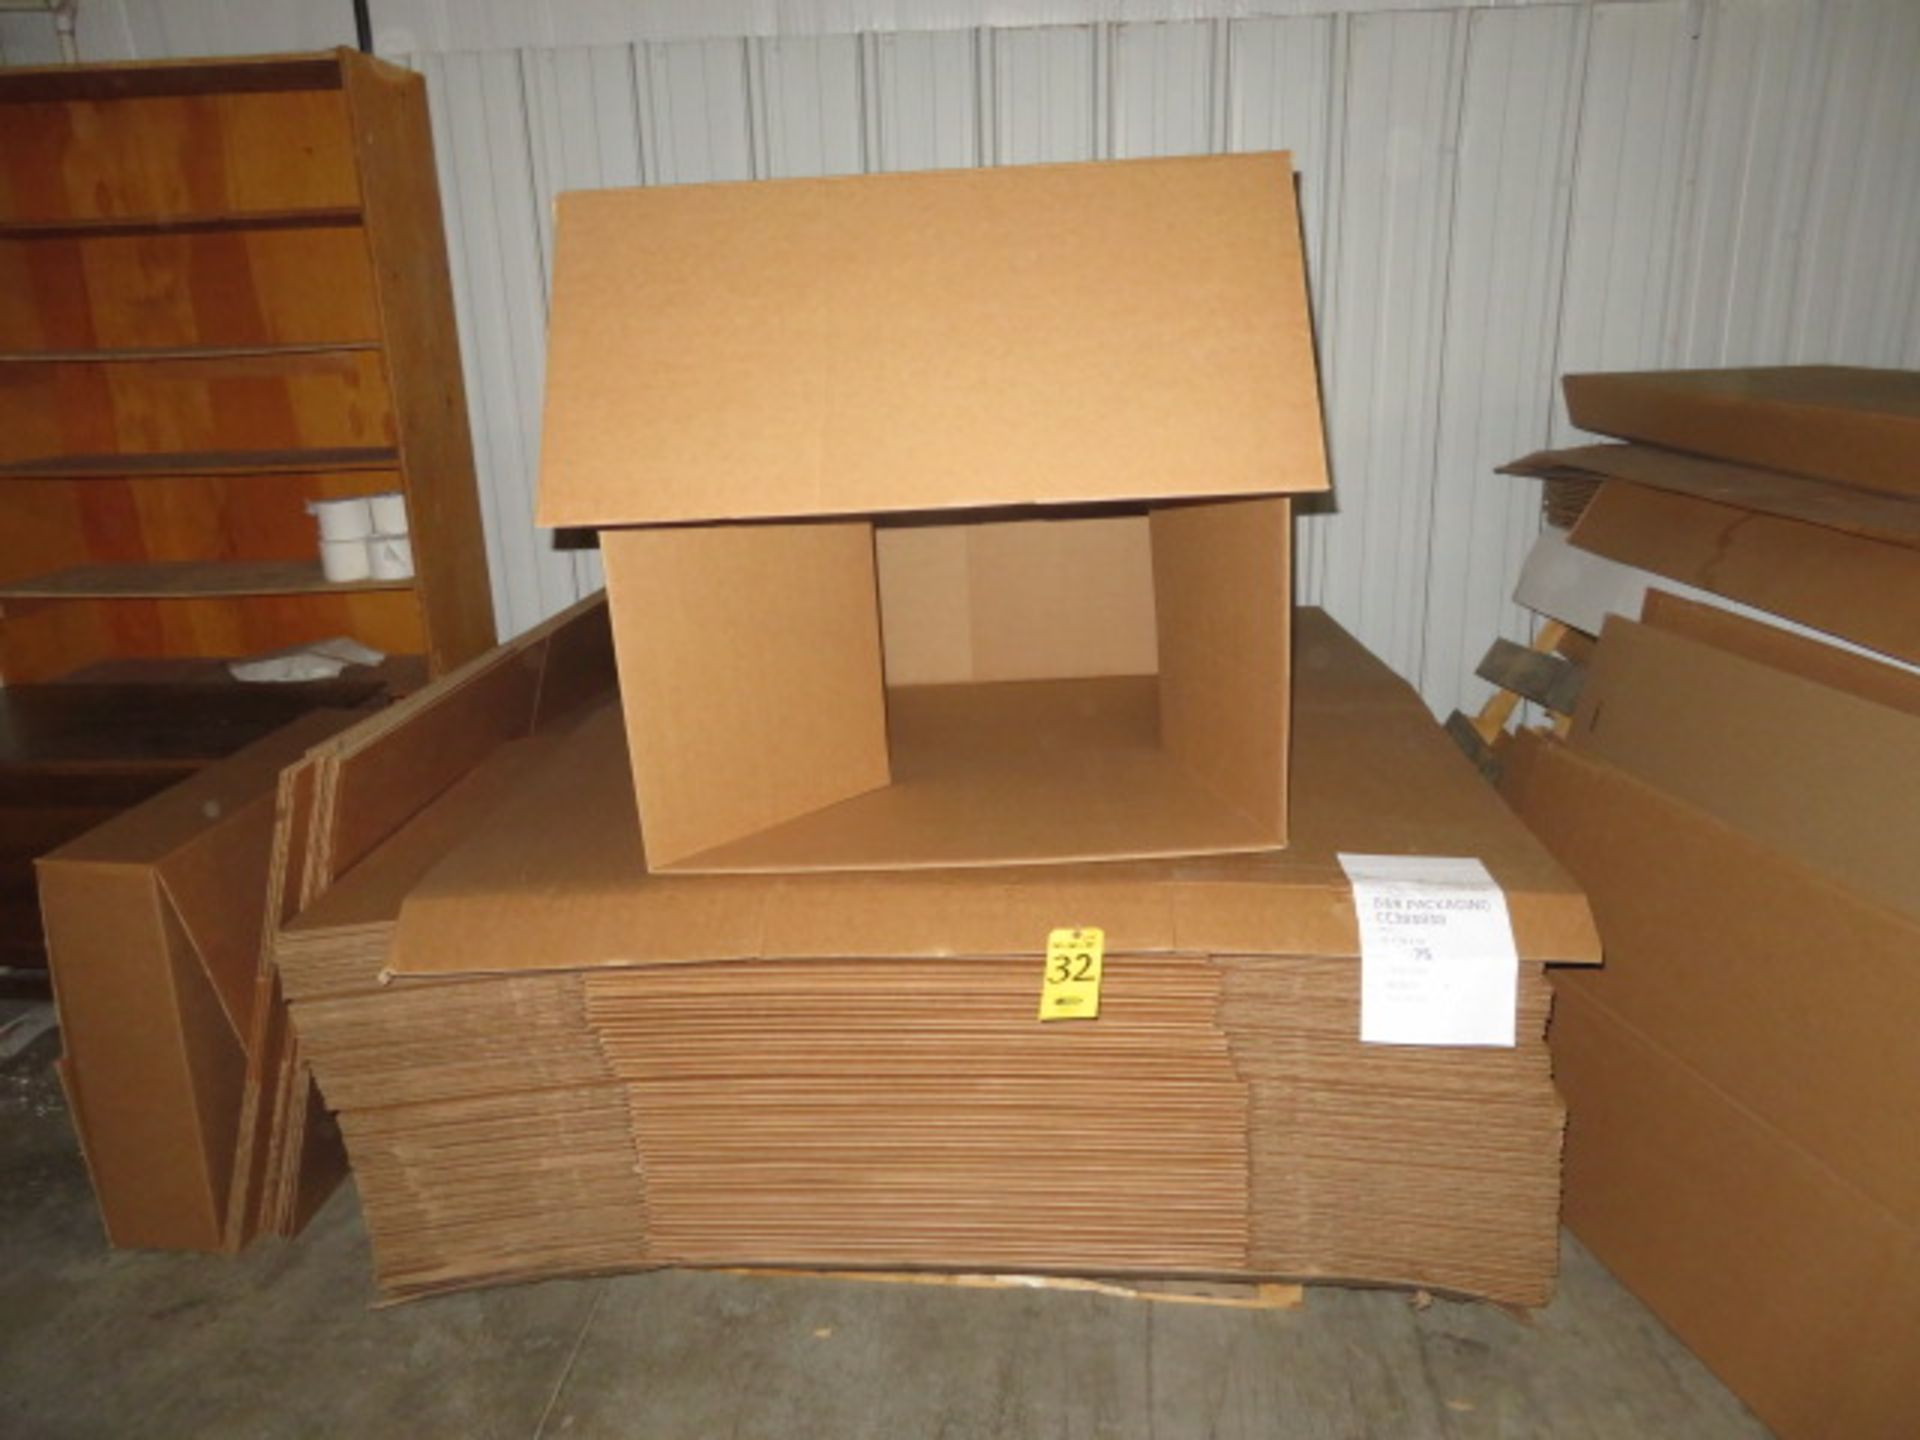 (50) 38 X 38 X 38 IN & (10) 36 X 31 X 8-1/2 IN K/D CORRUGATED BOXES